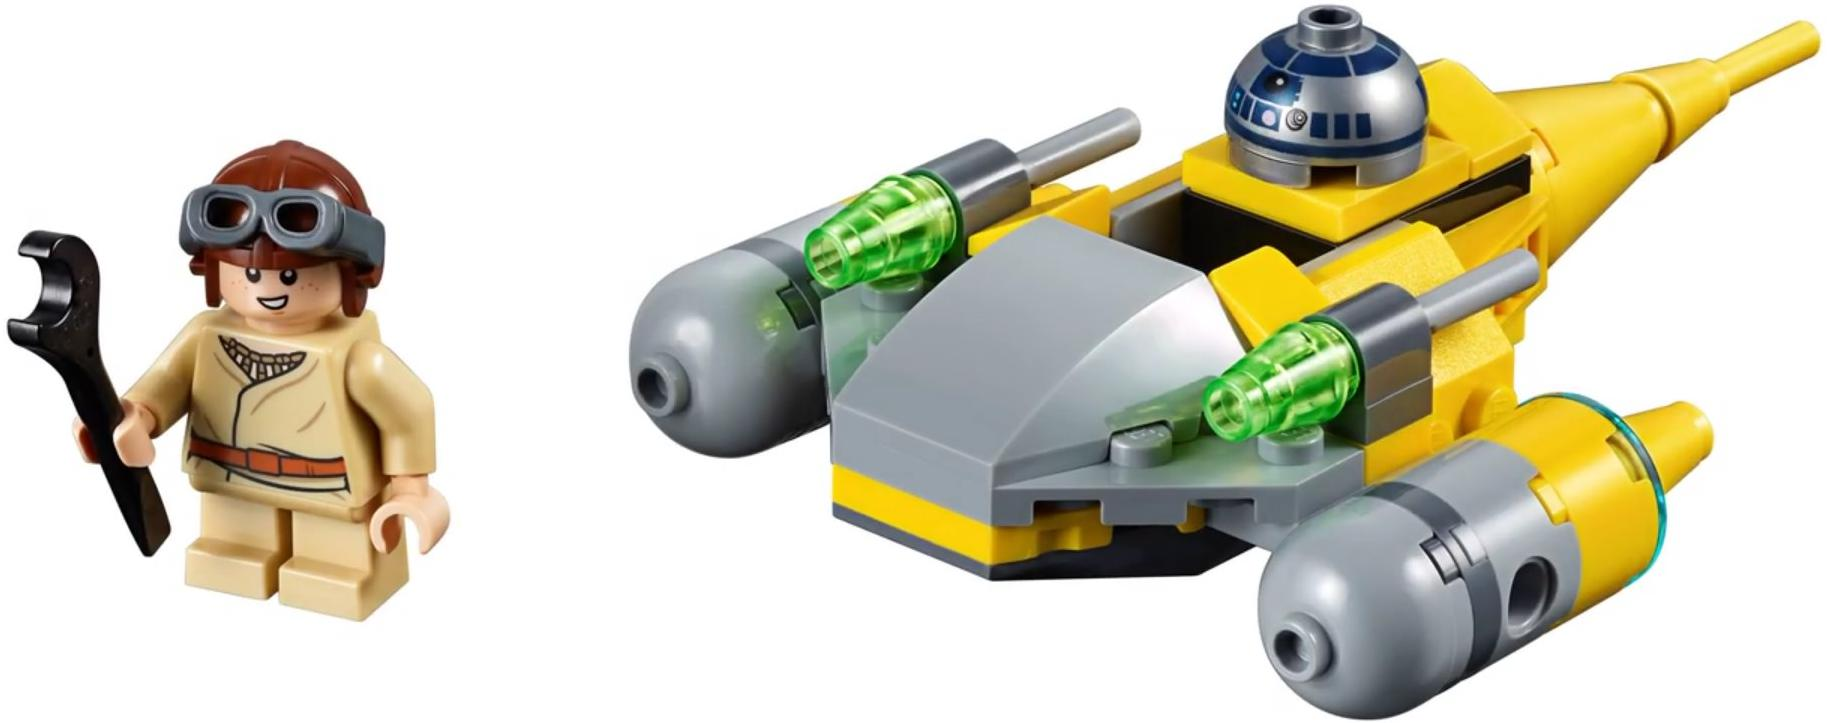 75223 Naboo Starfighter Microfighter Build and Minifigure